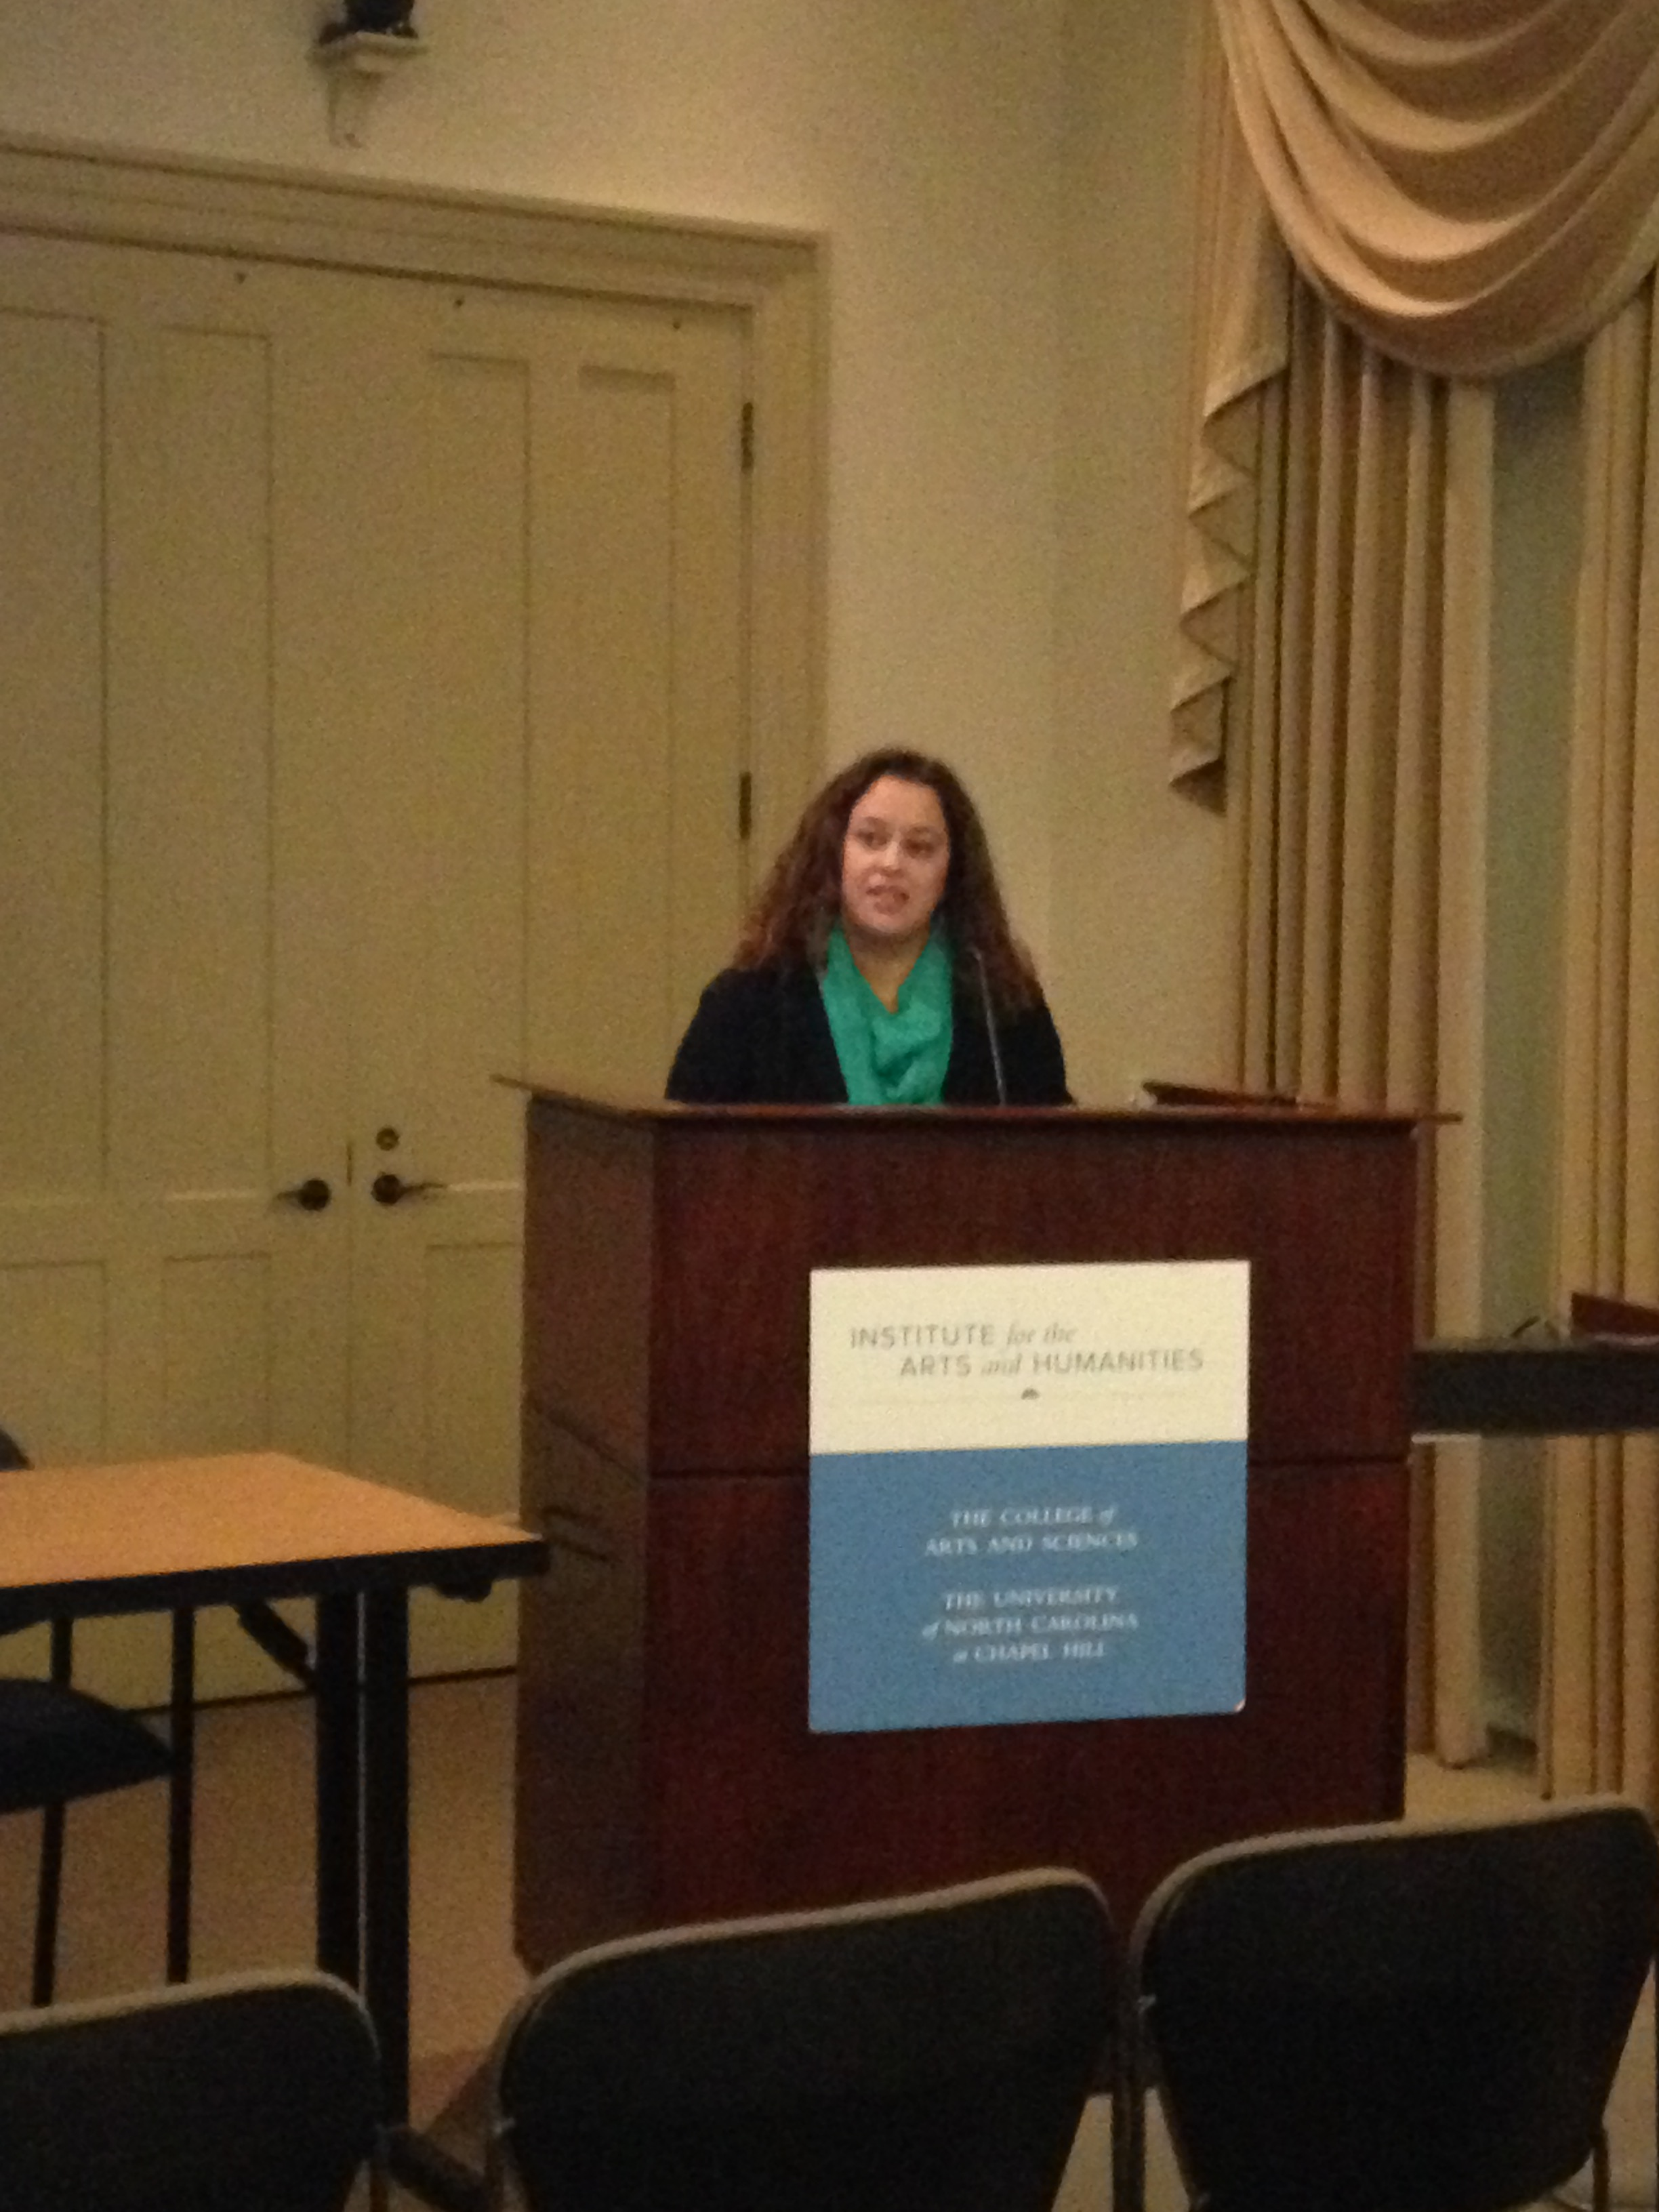 Dr. Christina Bejarano standing at a podium, looking out into the symposium crowd, and speaking into a microphone.